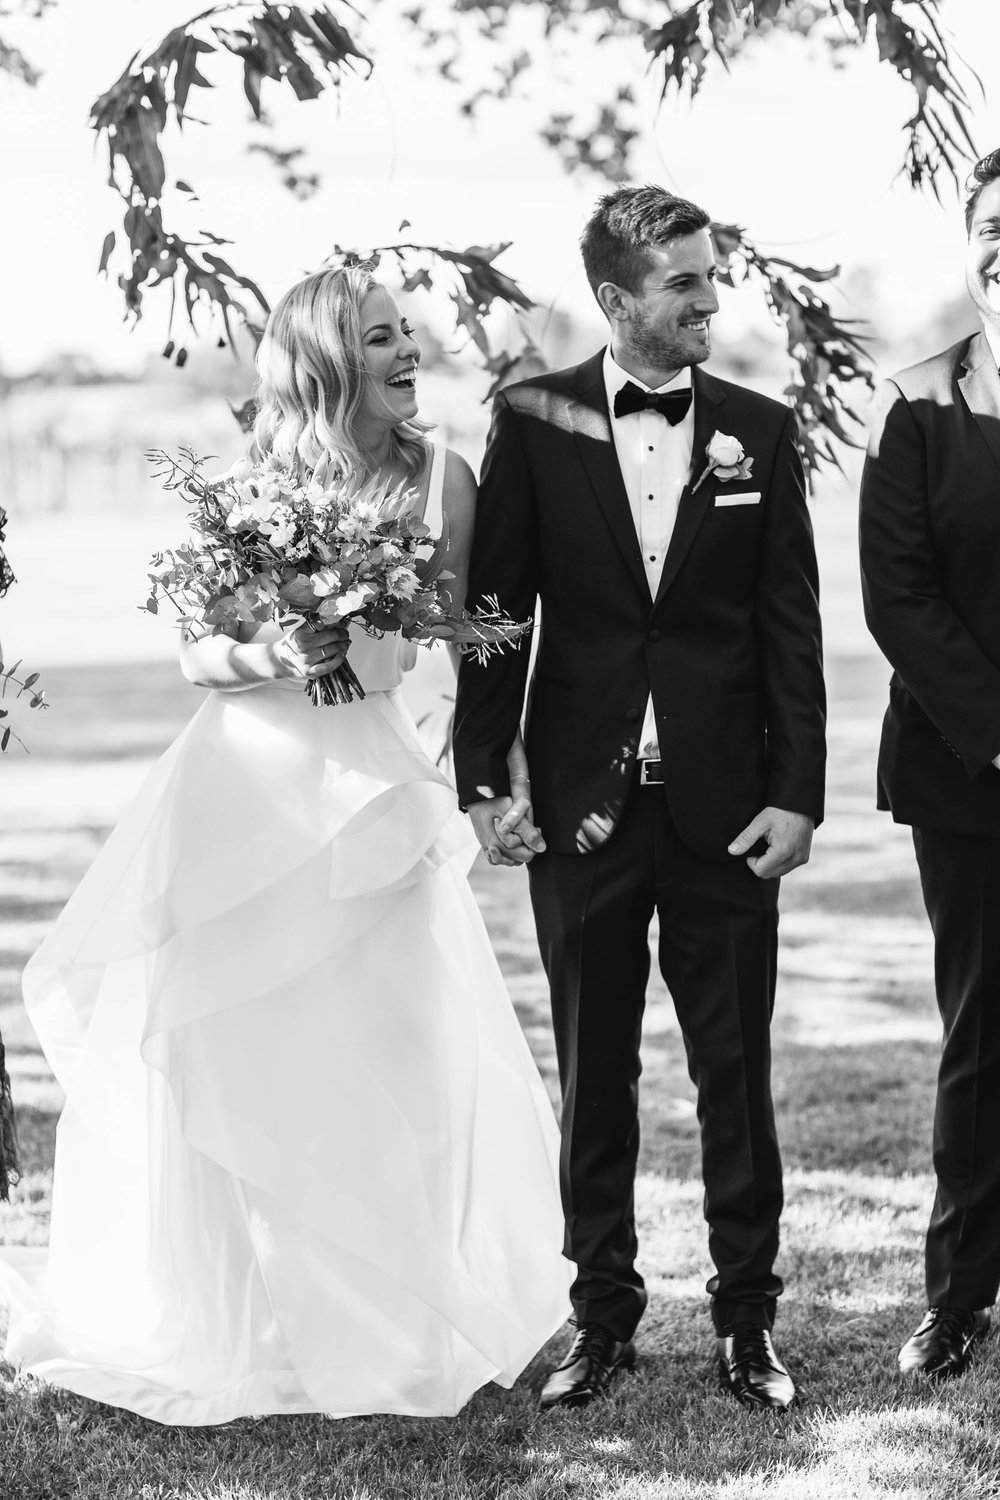 Kas-Richards-Wedding-Photographer-Country-Winery-Wedding-One-Day-Bridal-Gown-35.jpg